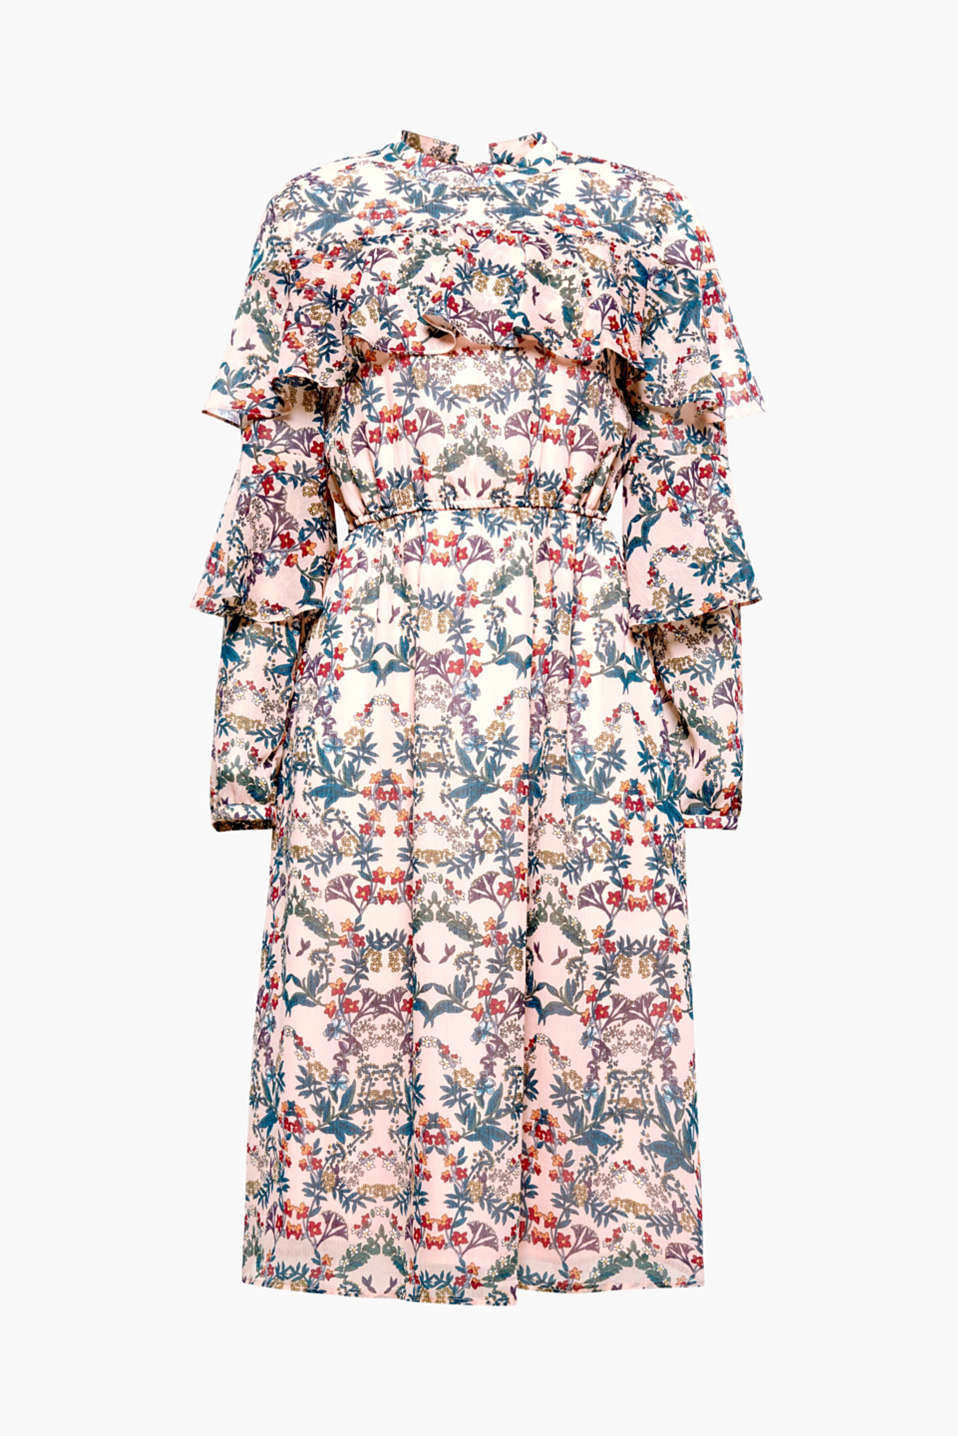 A feminine lightweight feel elevates this midi-dress in a romantic look made of crinkle-chiffon with a floral print.